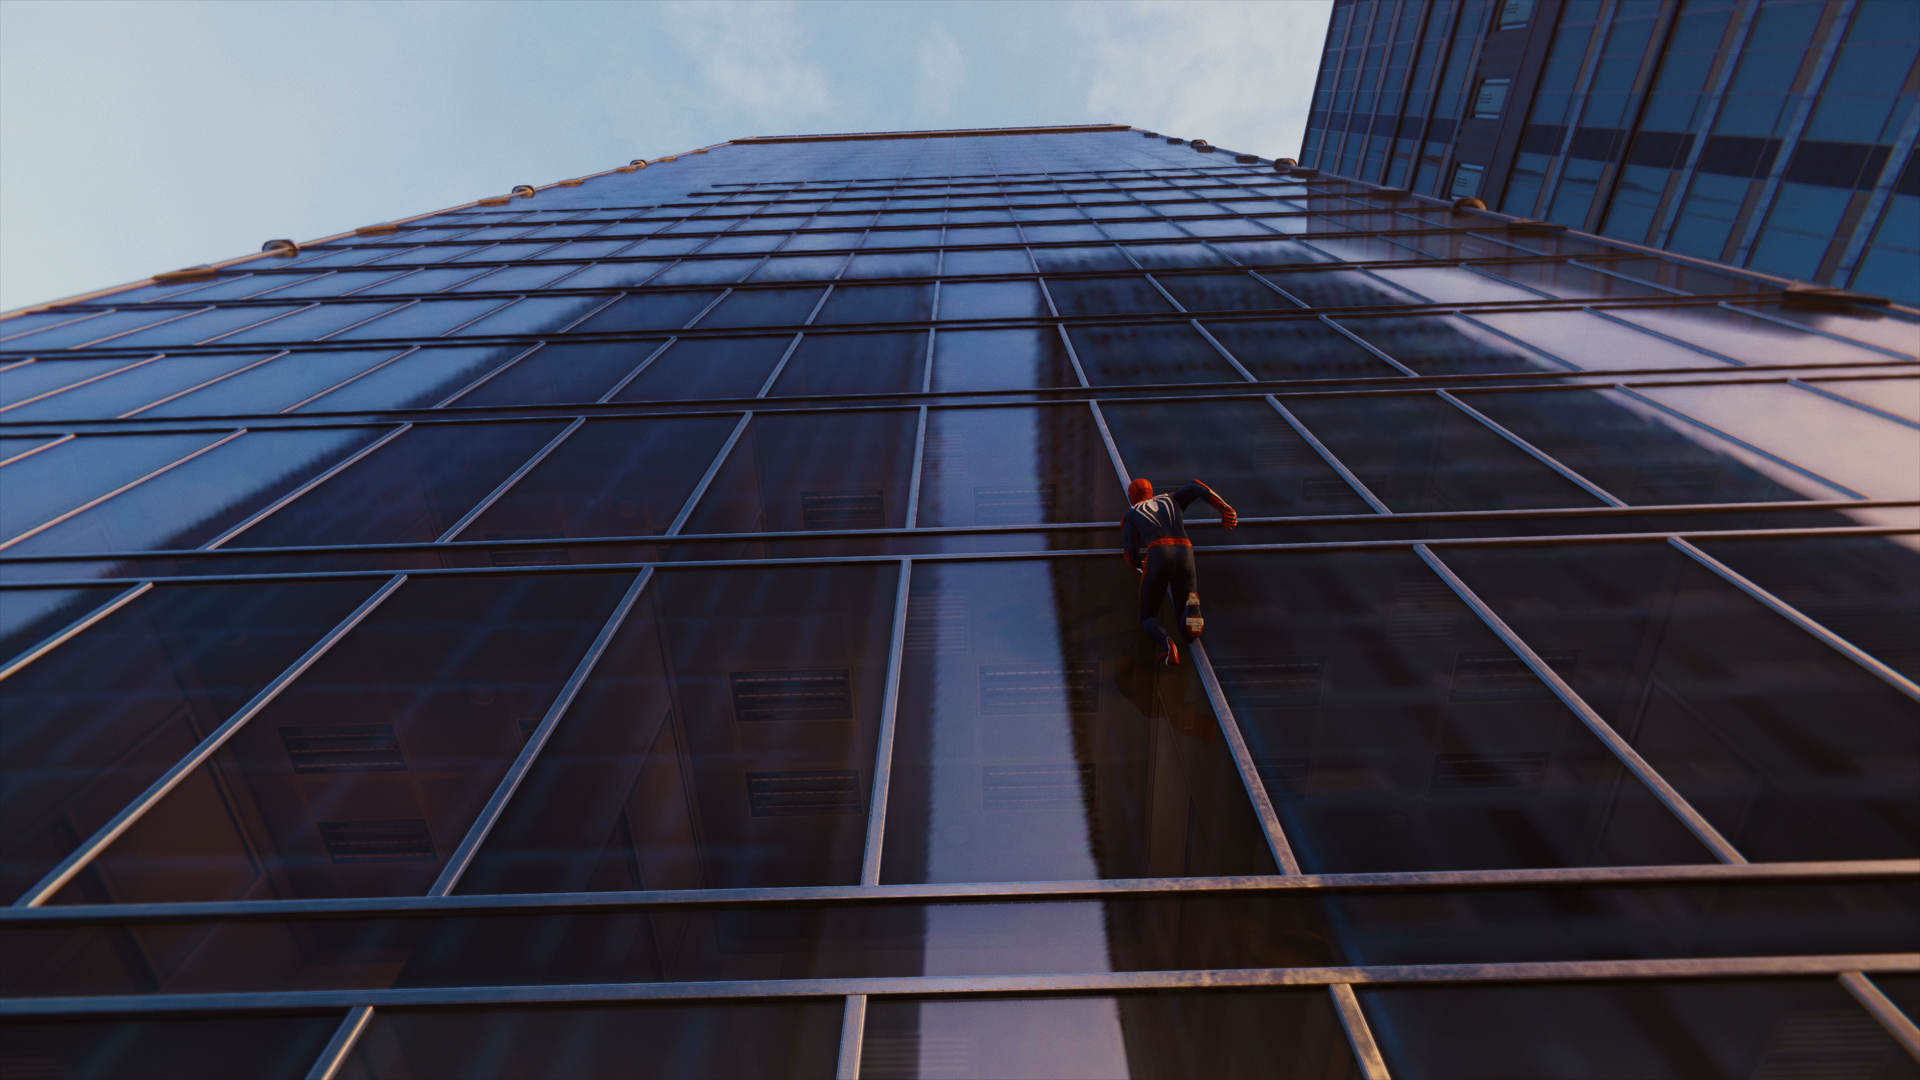 Spider-Man PS4's Twin Towers Easter egg, debunked - Polygon on world map china center, 911 tribute center, shanghai trade center, 9 11 memorial center, the grove shopping center, 2001 trade center, 9 11 trade center, dispatch center,